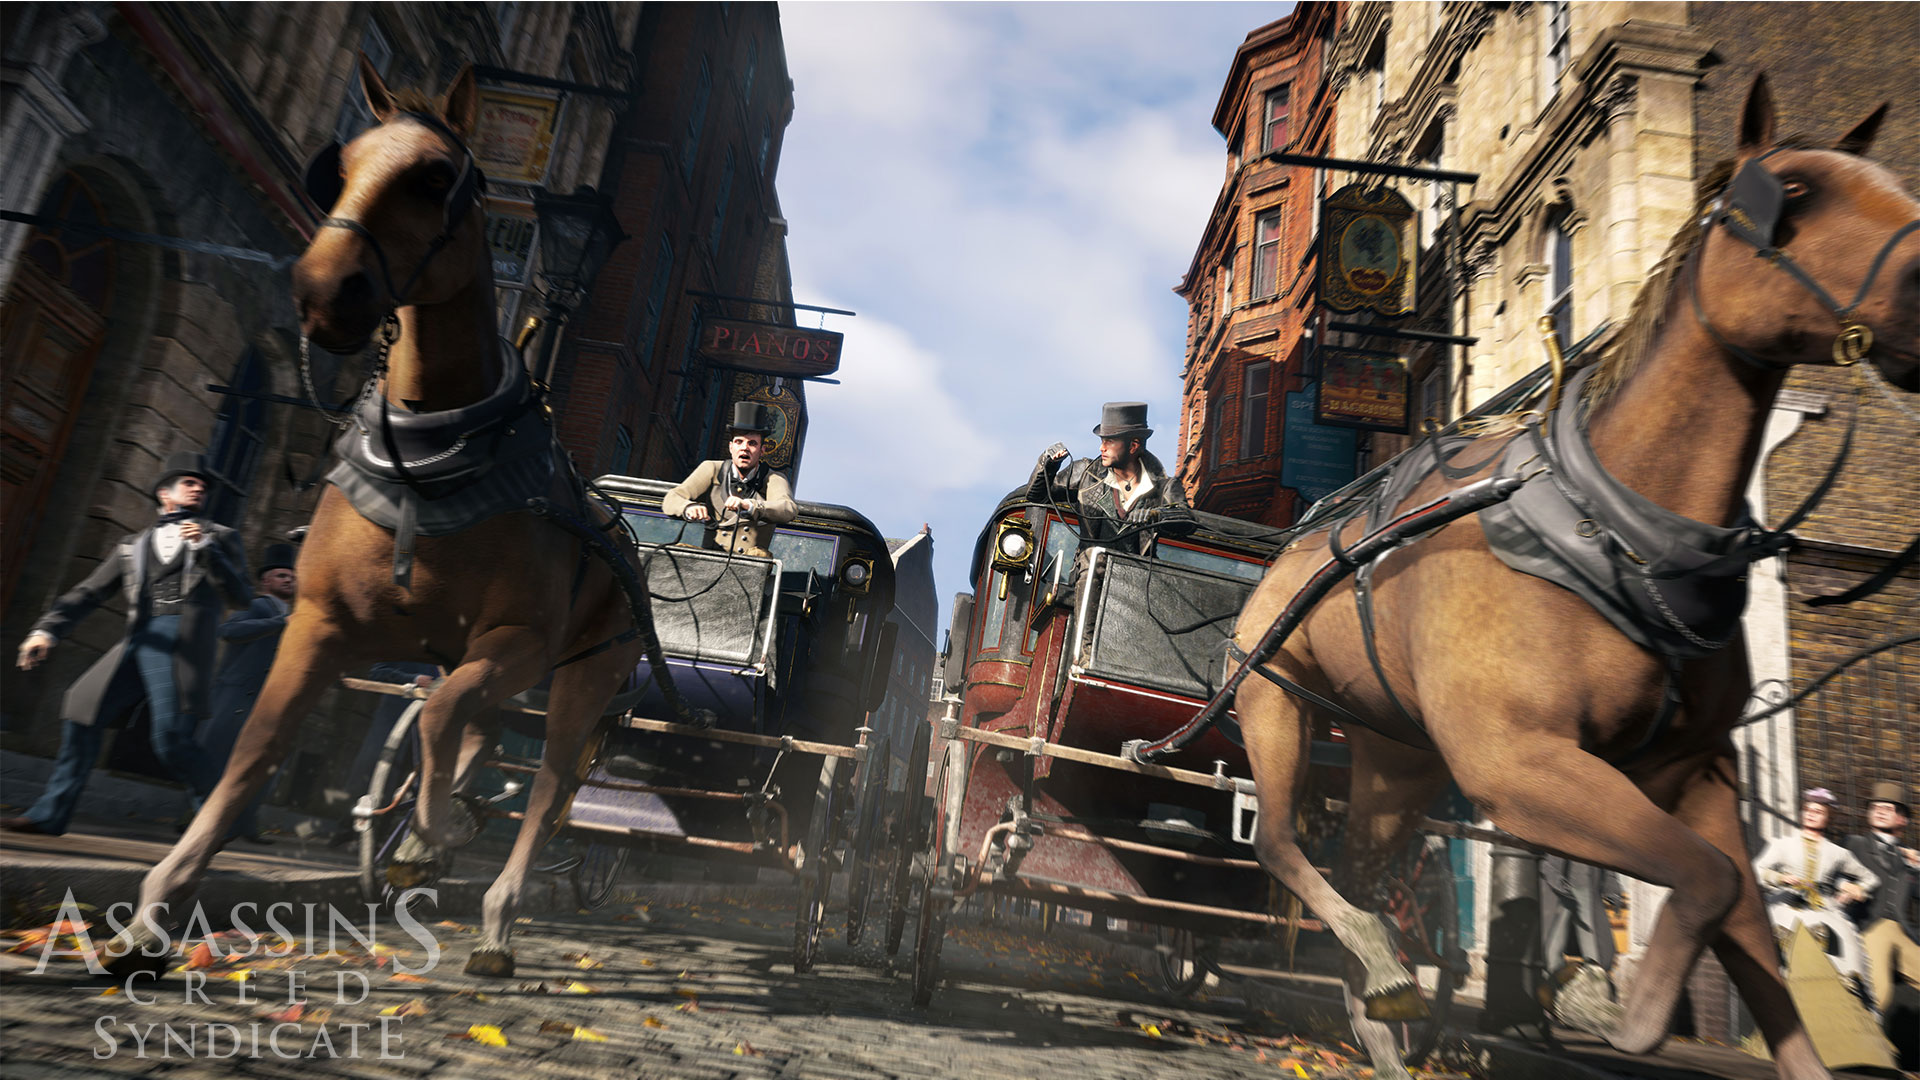 Visuel Calèche Assassin's Creed Syndicate